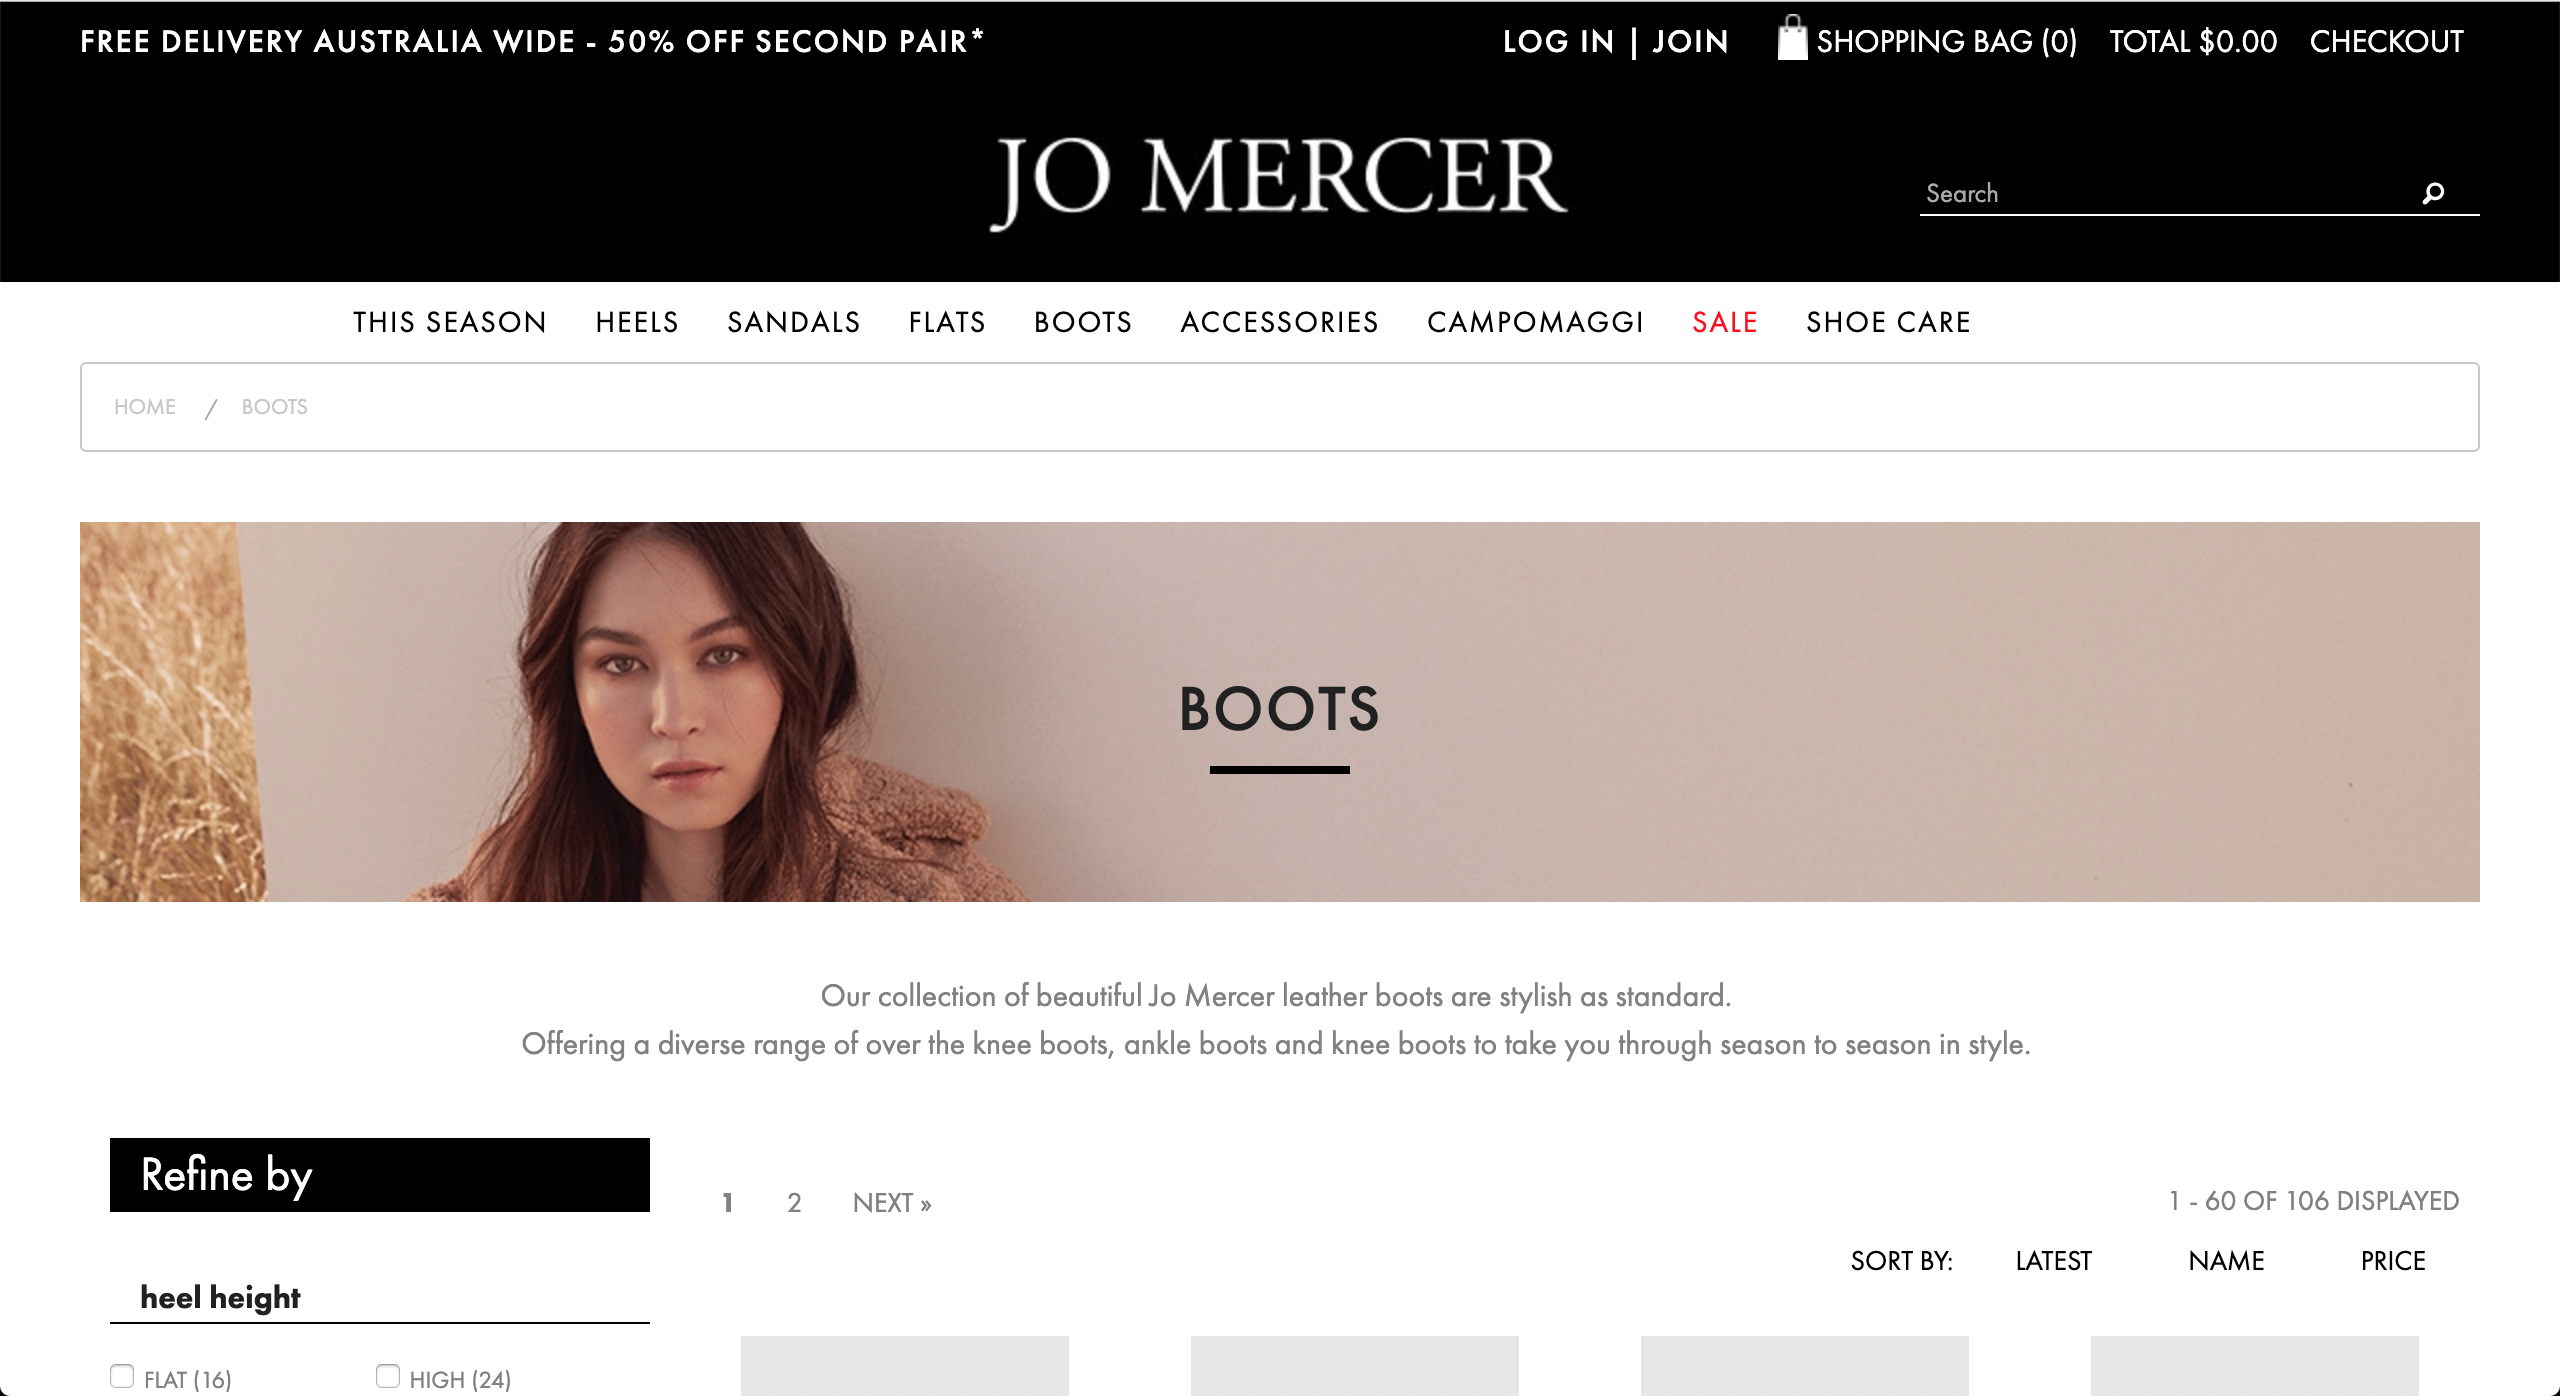 Jo Mercer Boots page